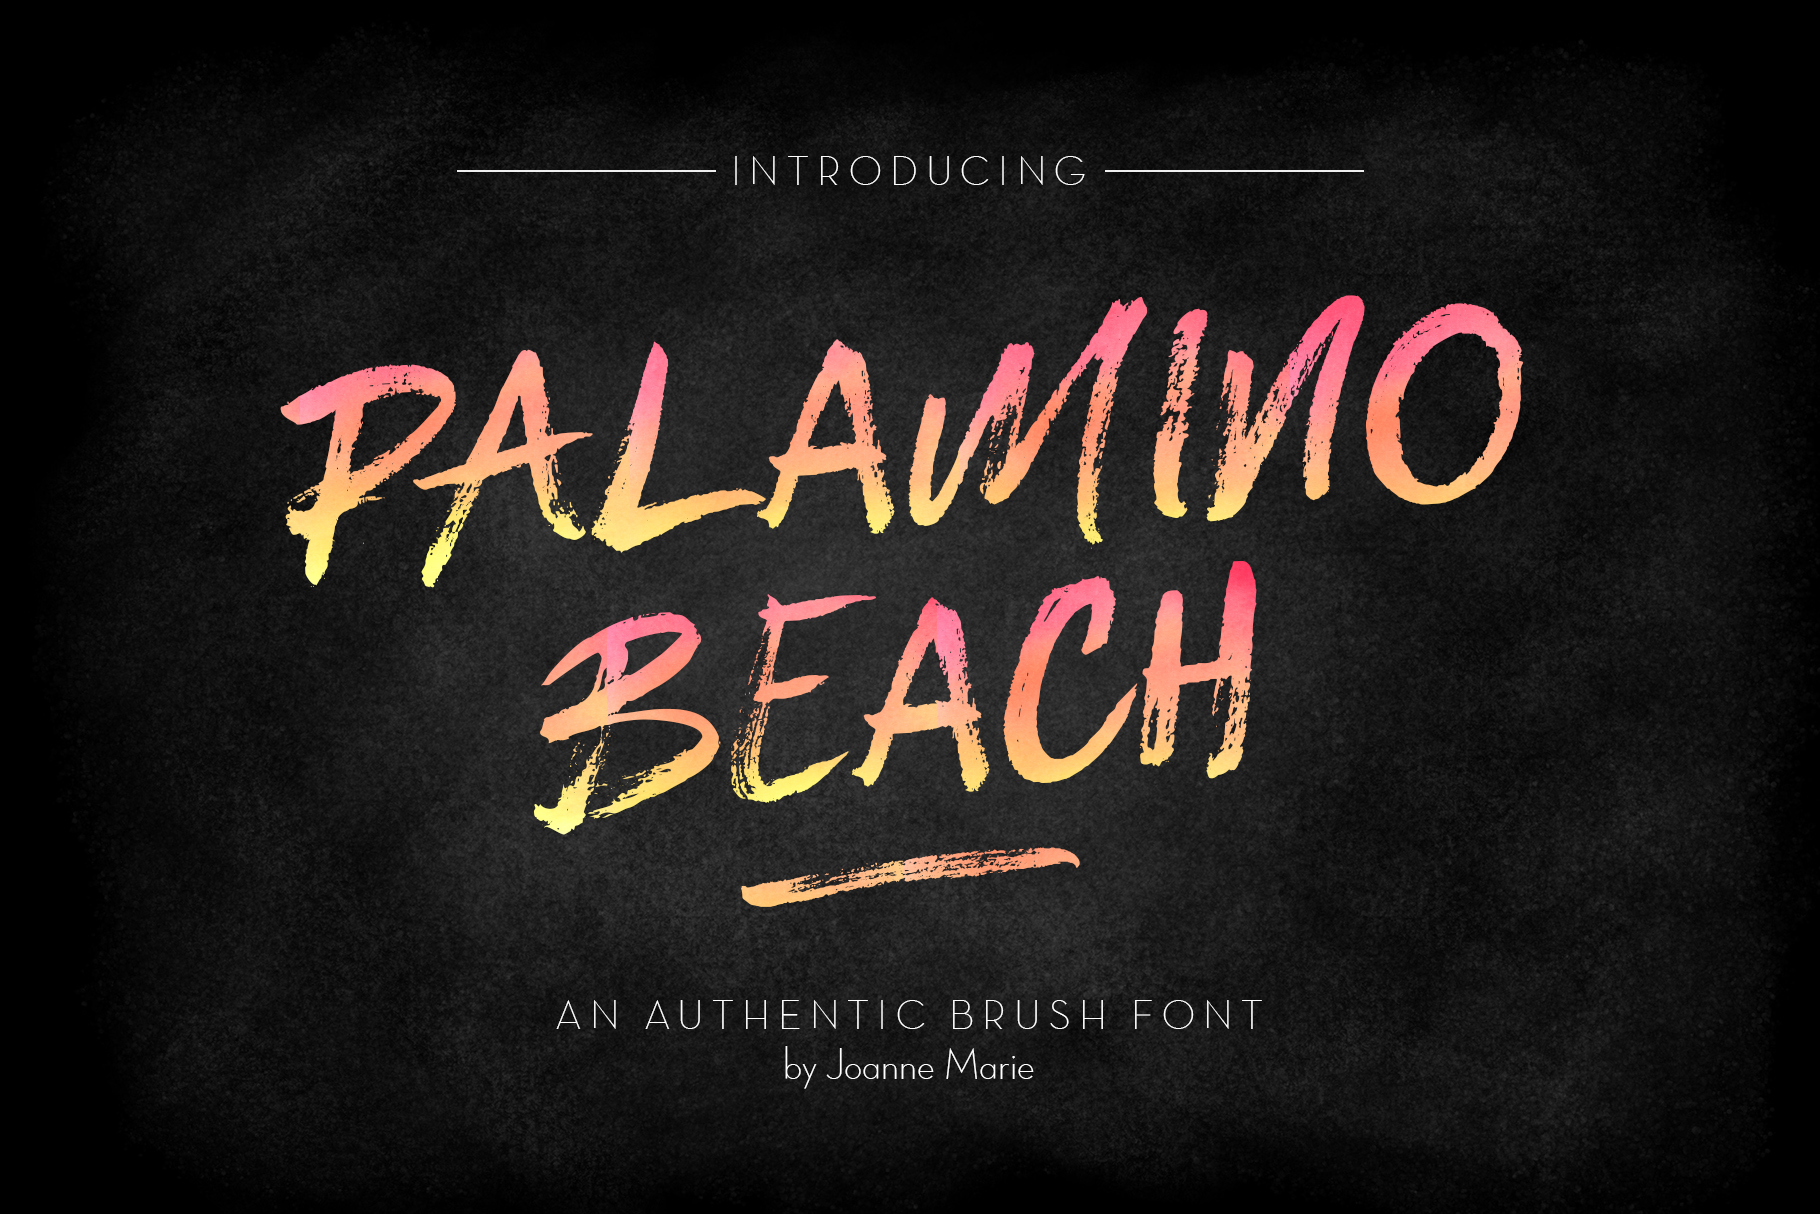 Palamino Beach Brush Font example image 1